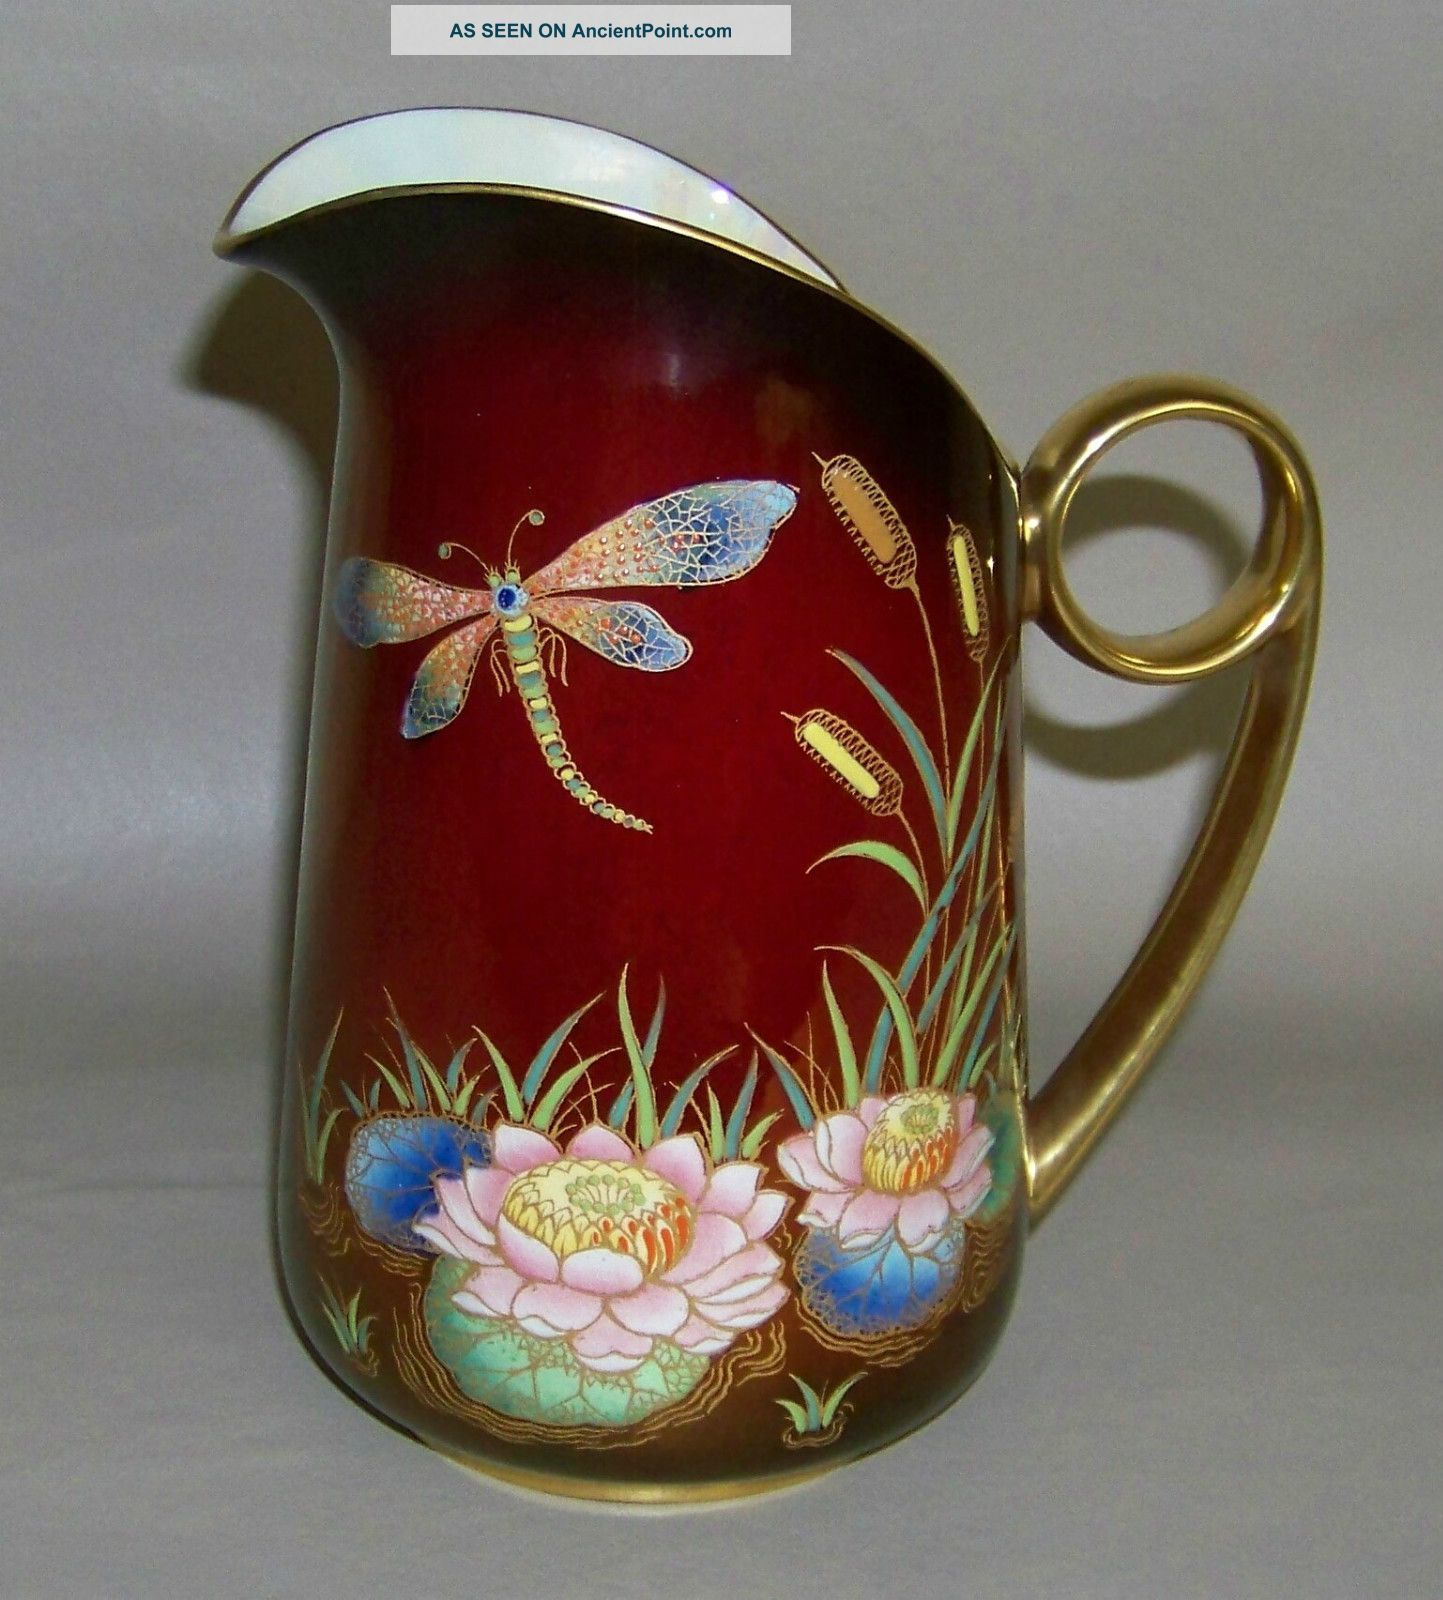 rare c1930s dragonfly lotus pitcher carlton ware rouge royale art porcelain pitchers photo. Black Bedroom Furniture Sets. Home Design Ideas